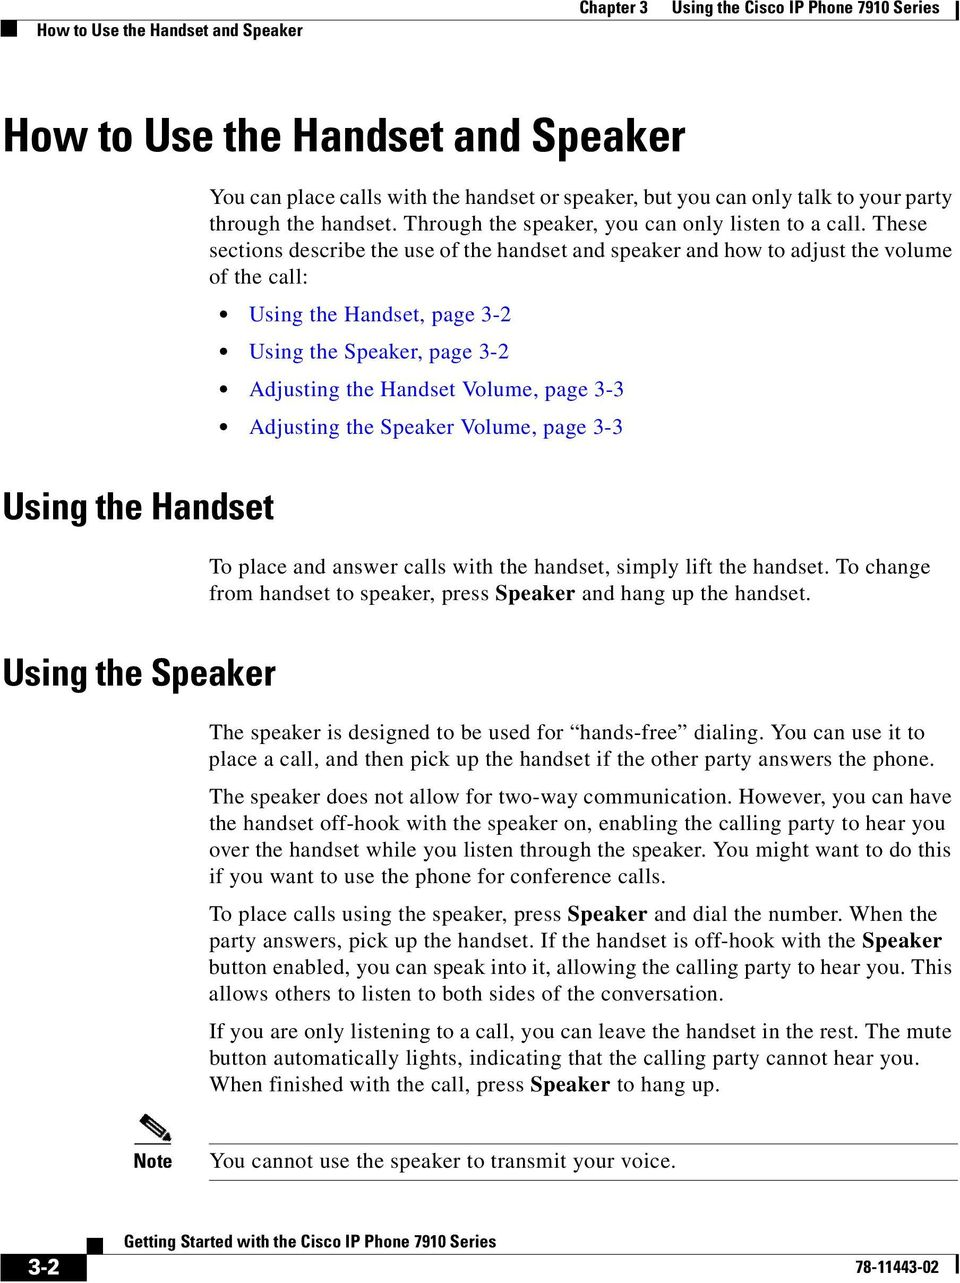 These sections describe the use of the handset and speaker and how to adjust the volume of the call: Using the Handset, page 3-2 Using the Speaker, page 3-2 Adjusting the Handset Volume, page 3-3